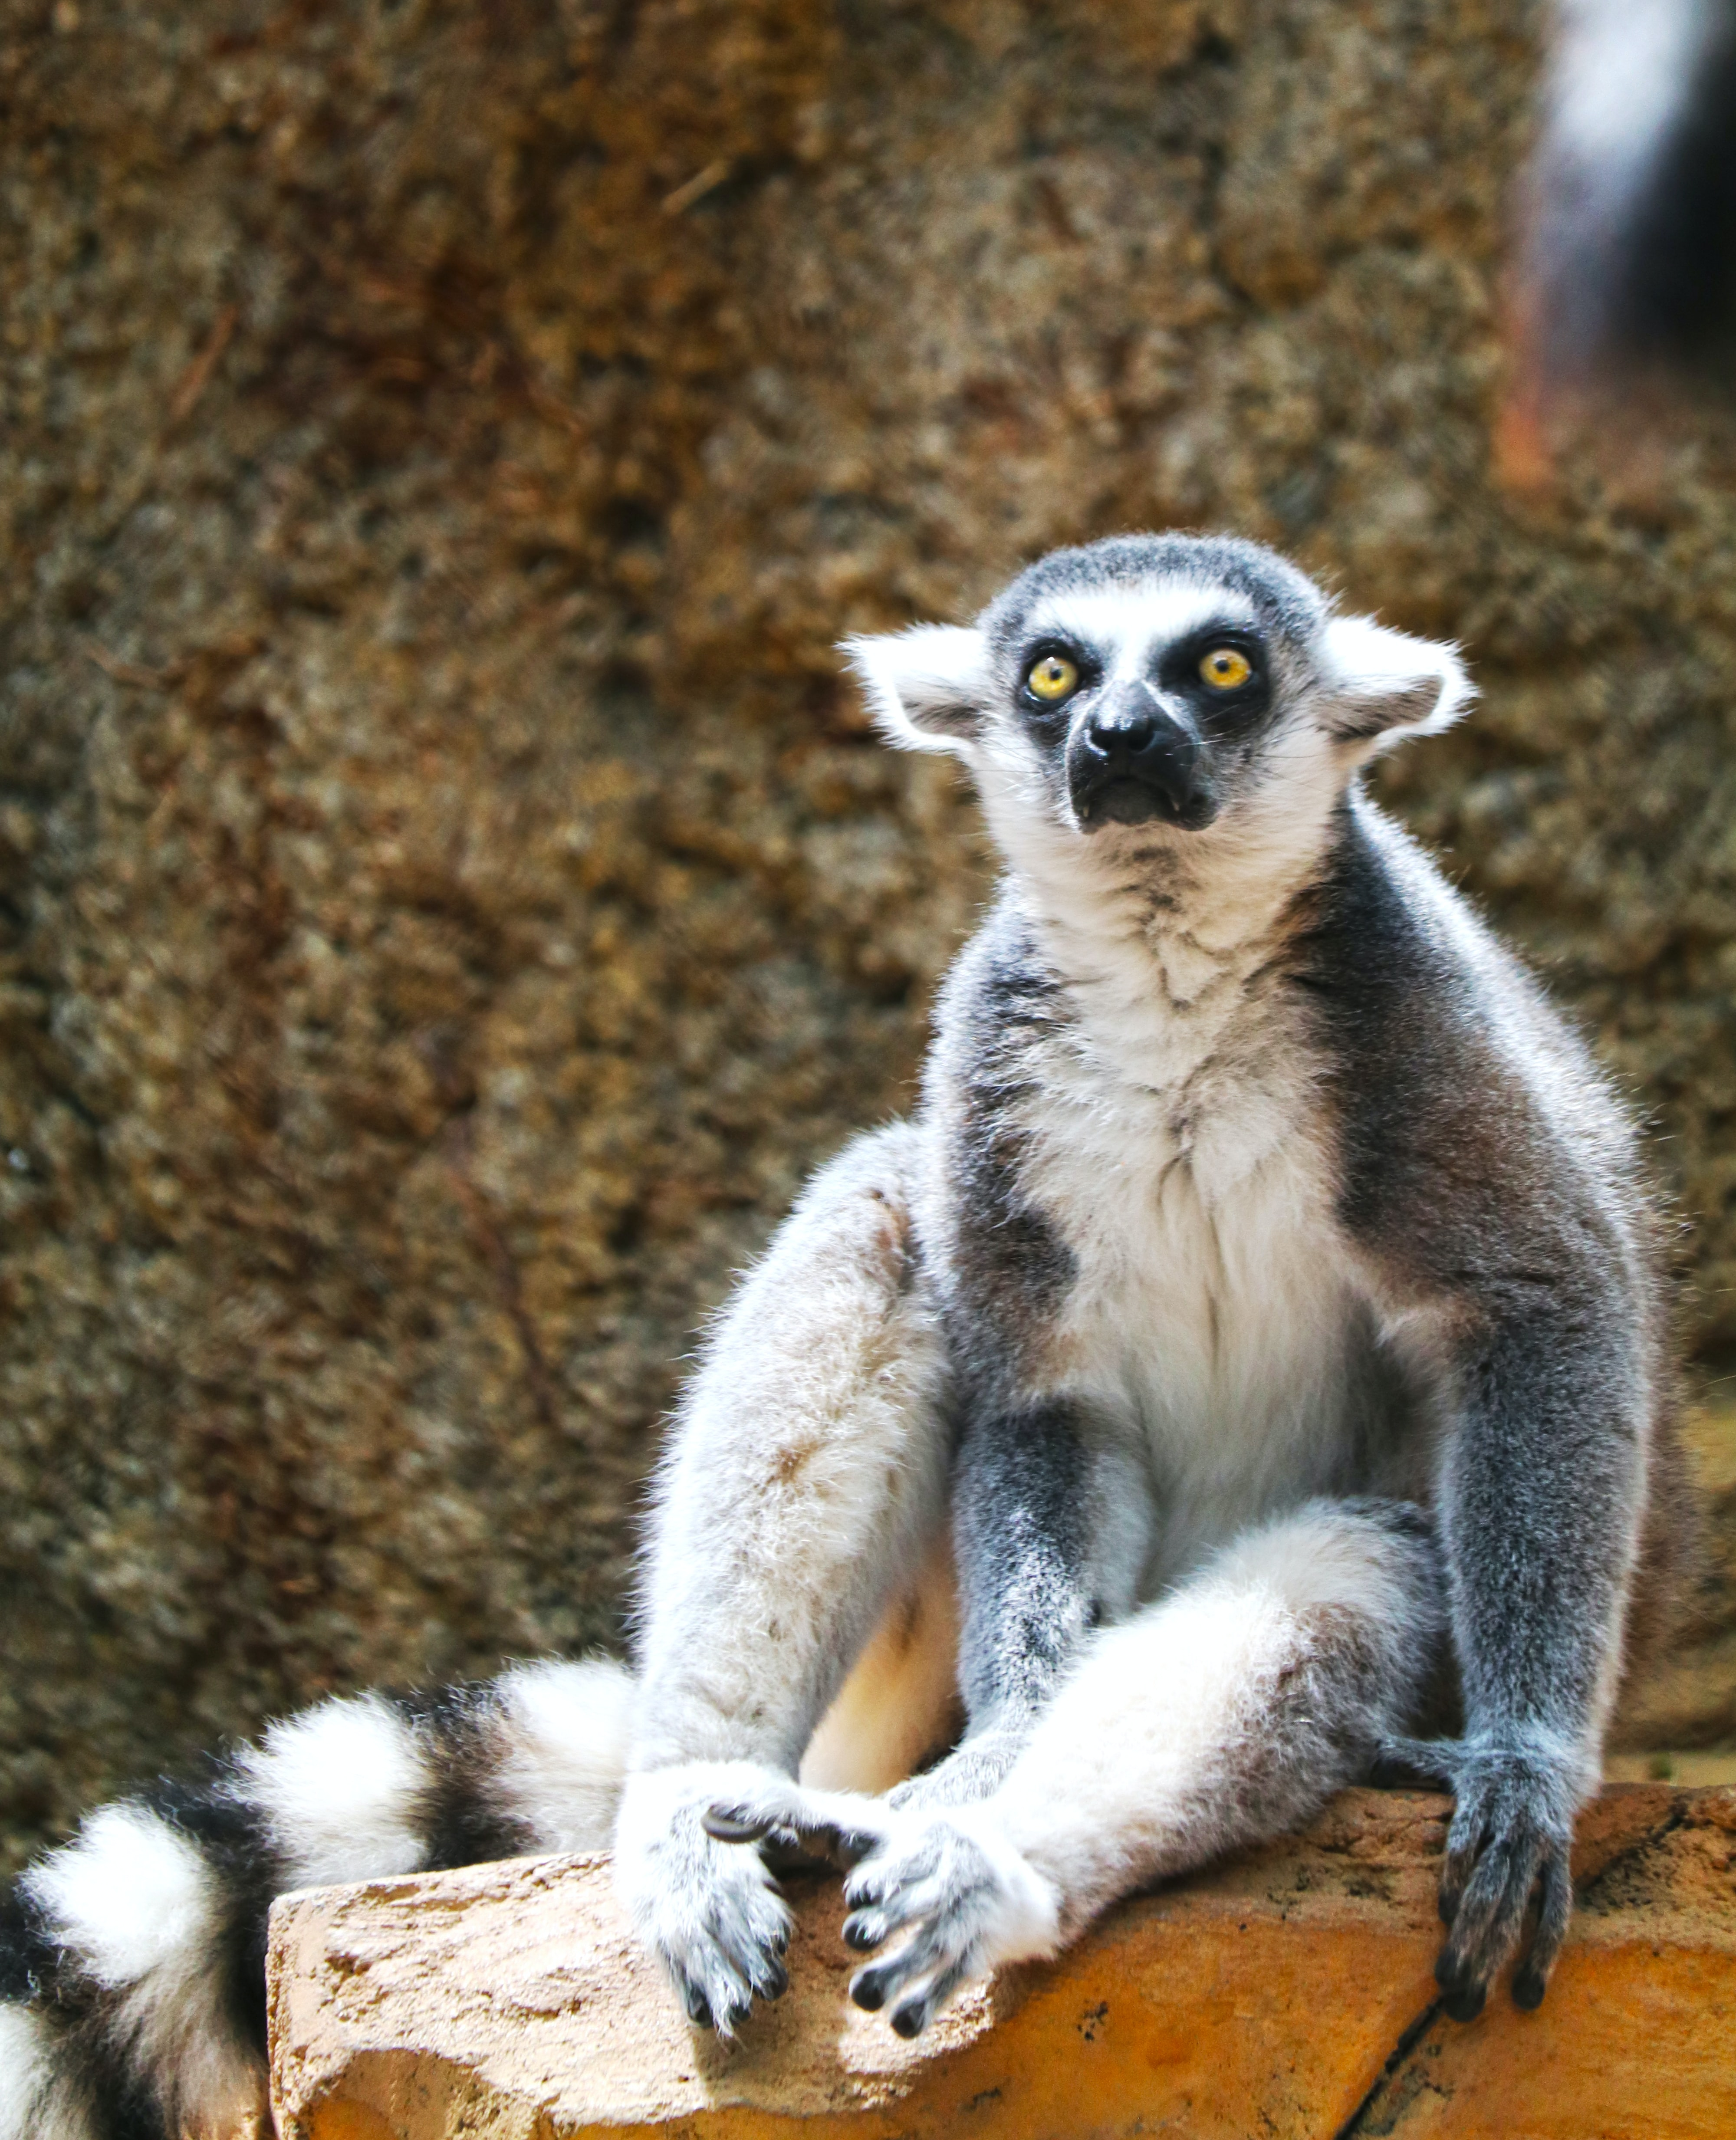 black and white lemur sitting down on brown rock